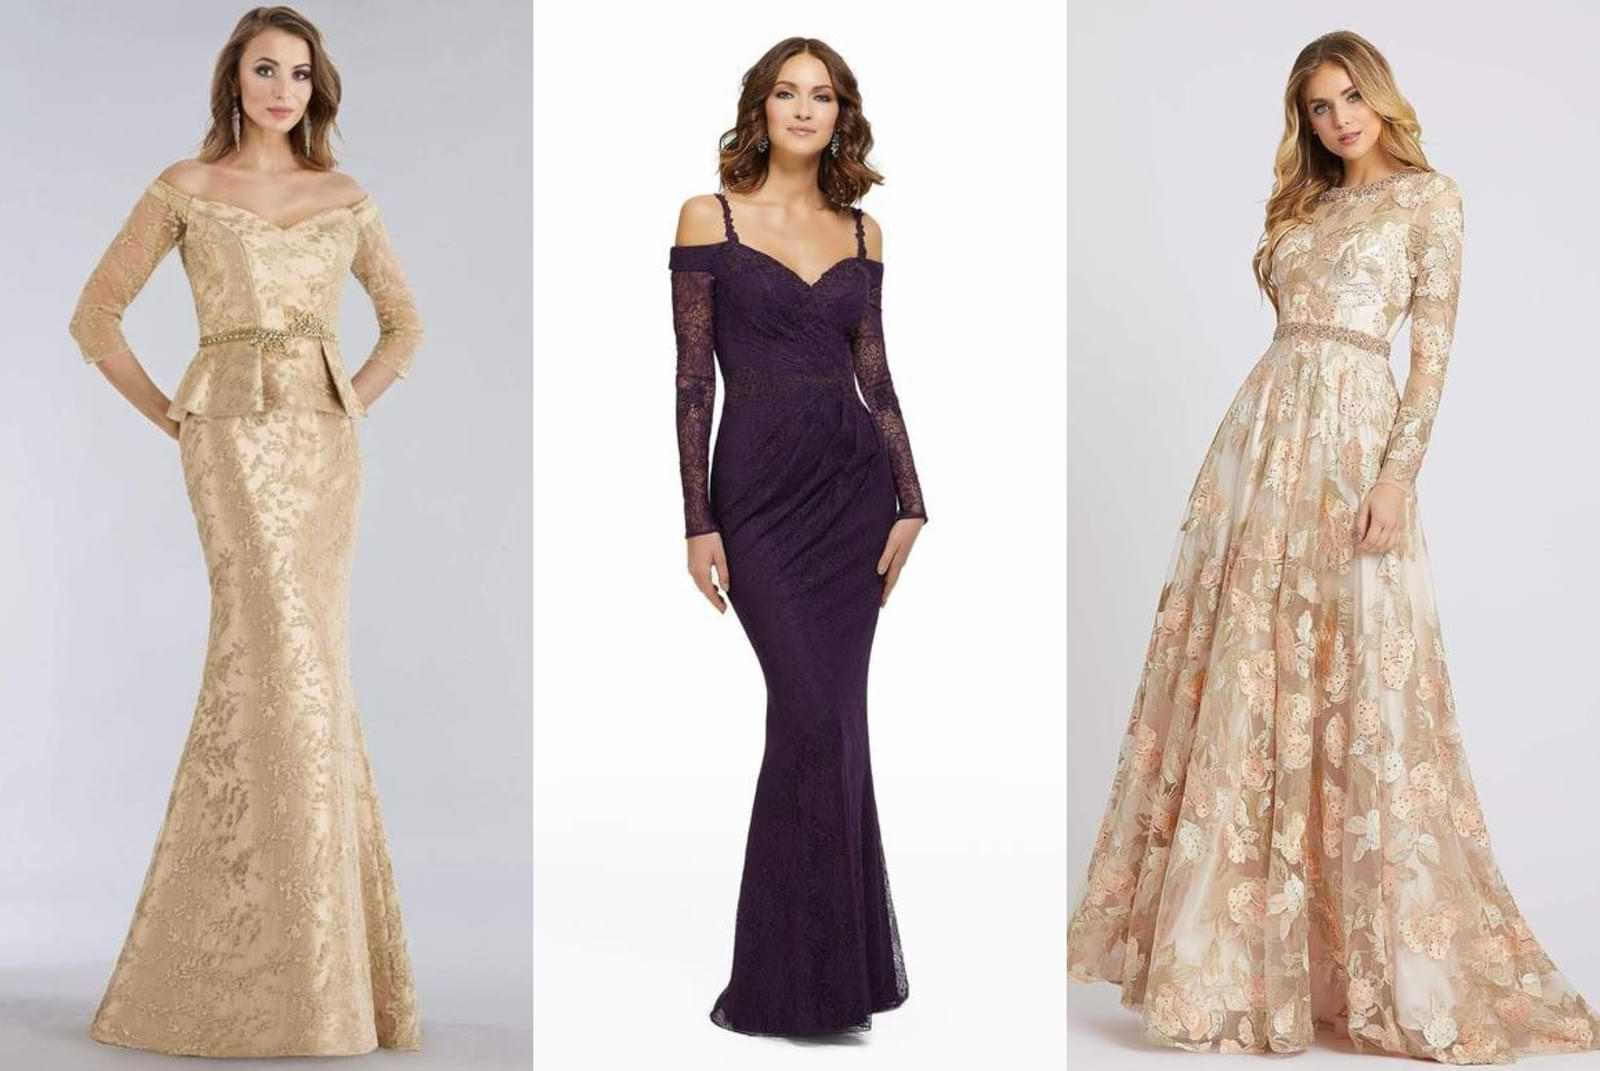 6 Things To Remember While Buying Mother Of The Bride Dresses